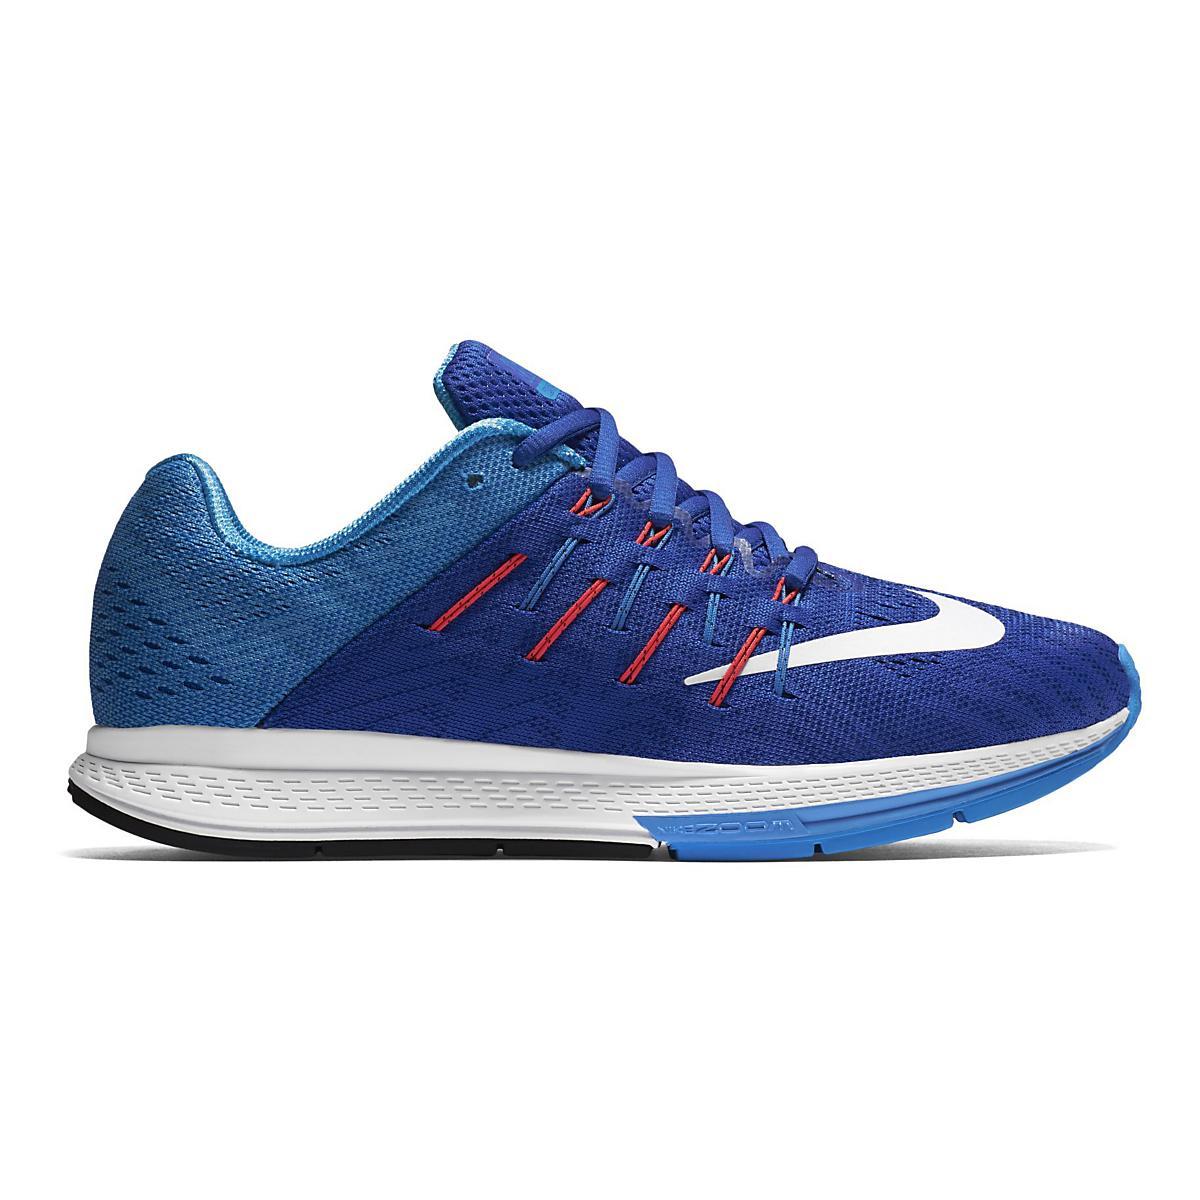 d5e2c277654b Womens Nike Air Zoom Elite 8 Running Shoe at Road Runner Sports